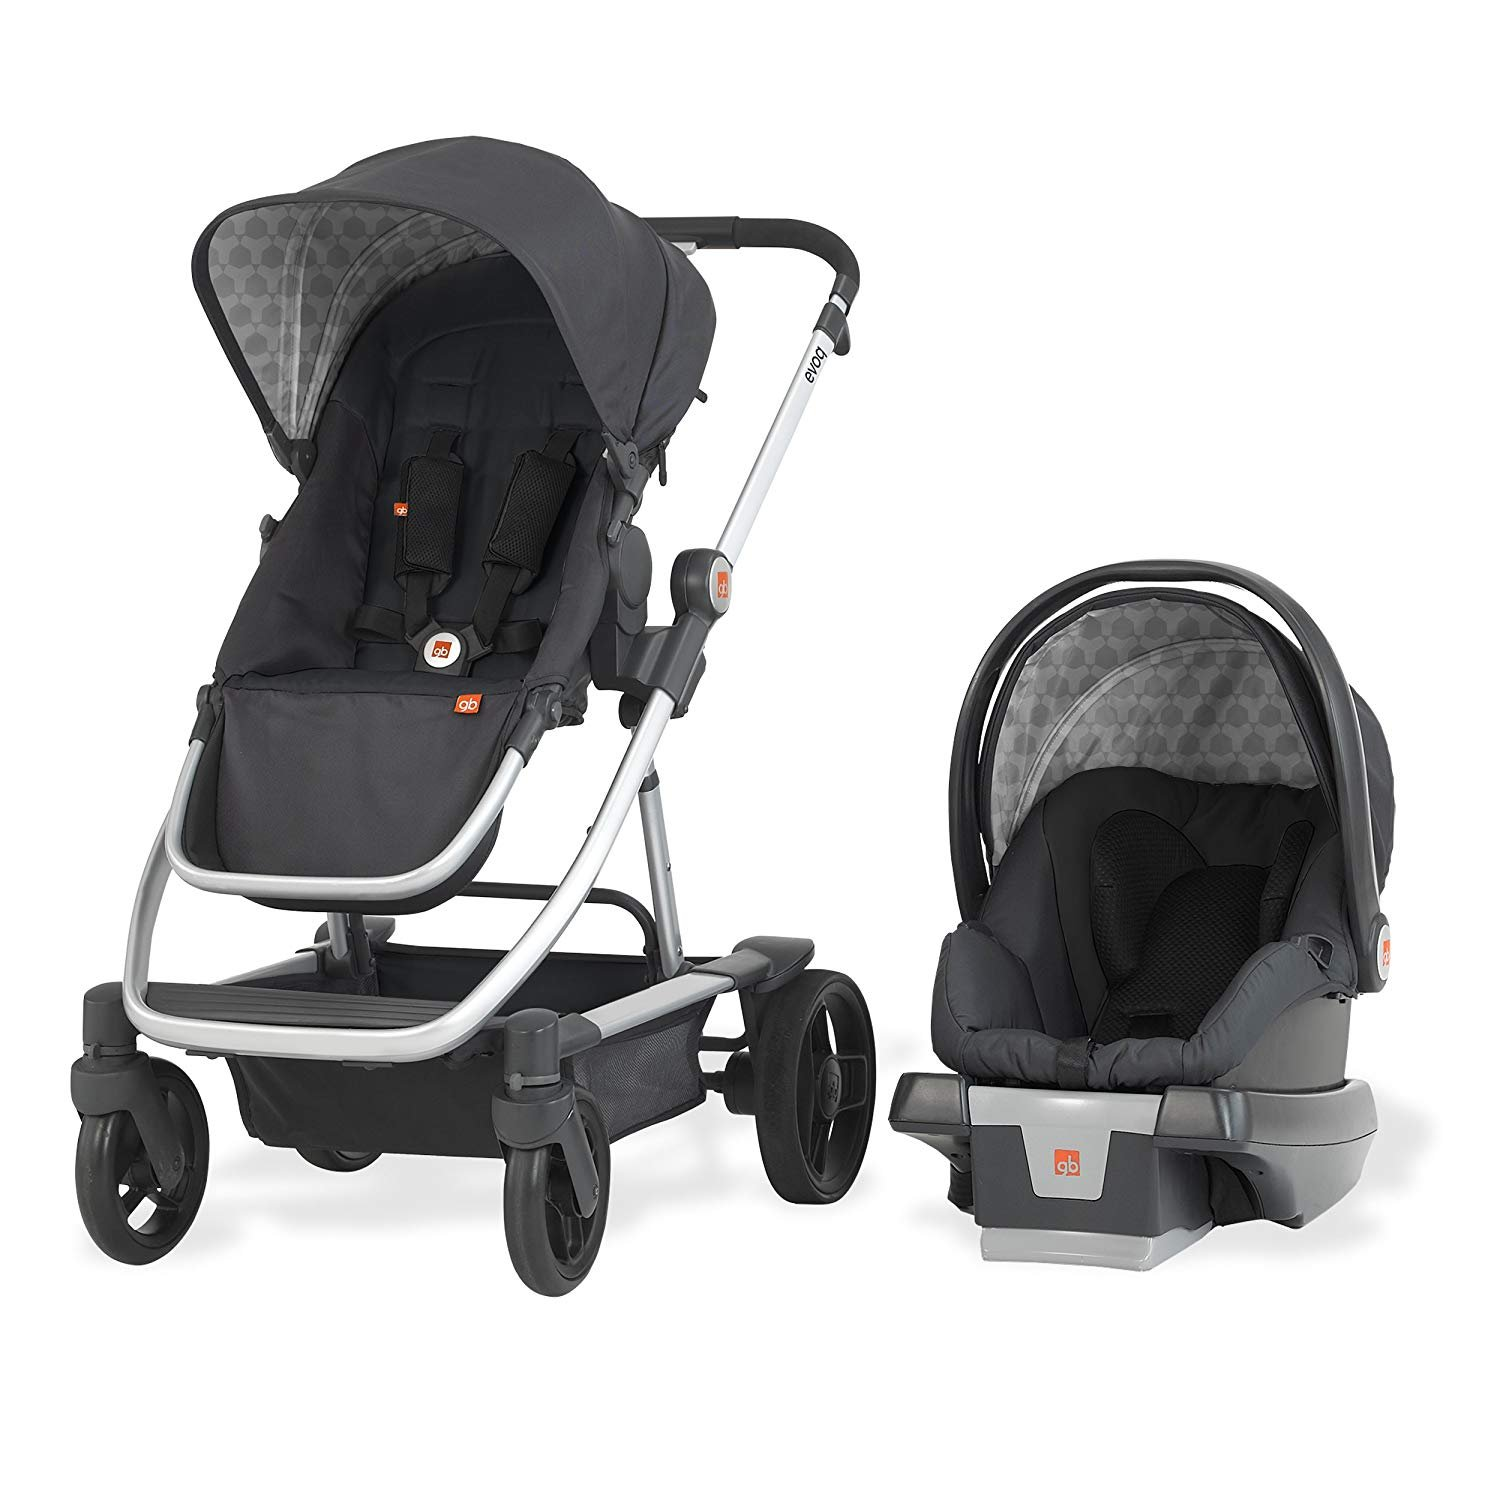 gb Evoq 4-in-1 Travel System, Charcoal by gb